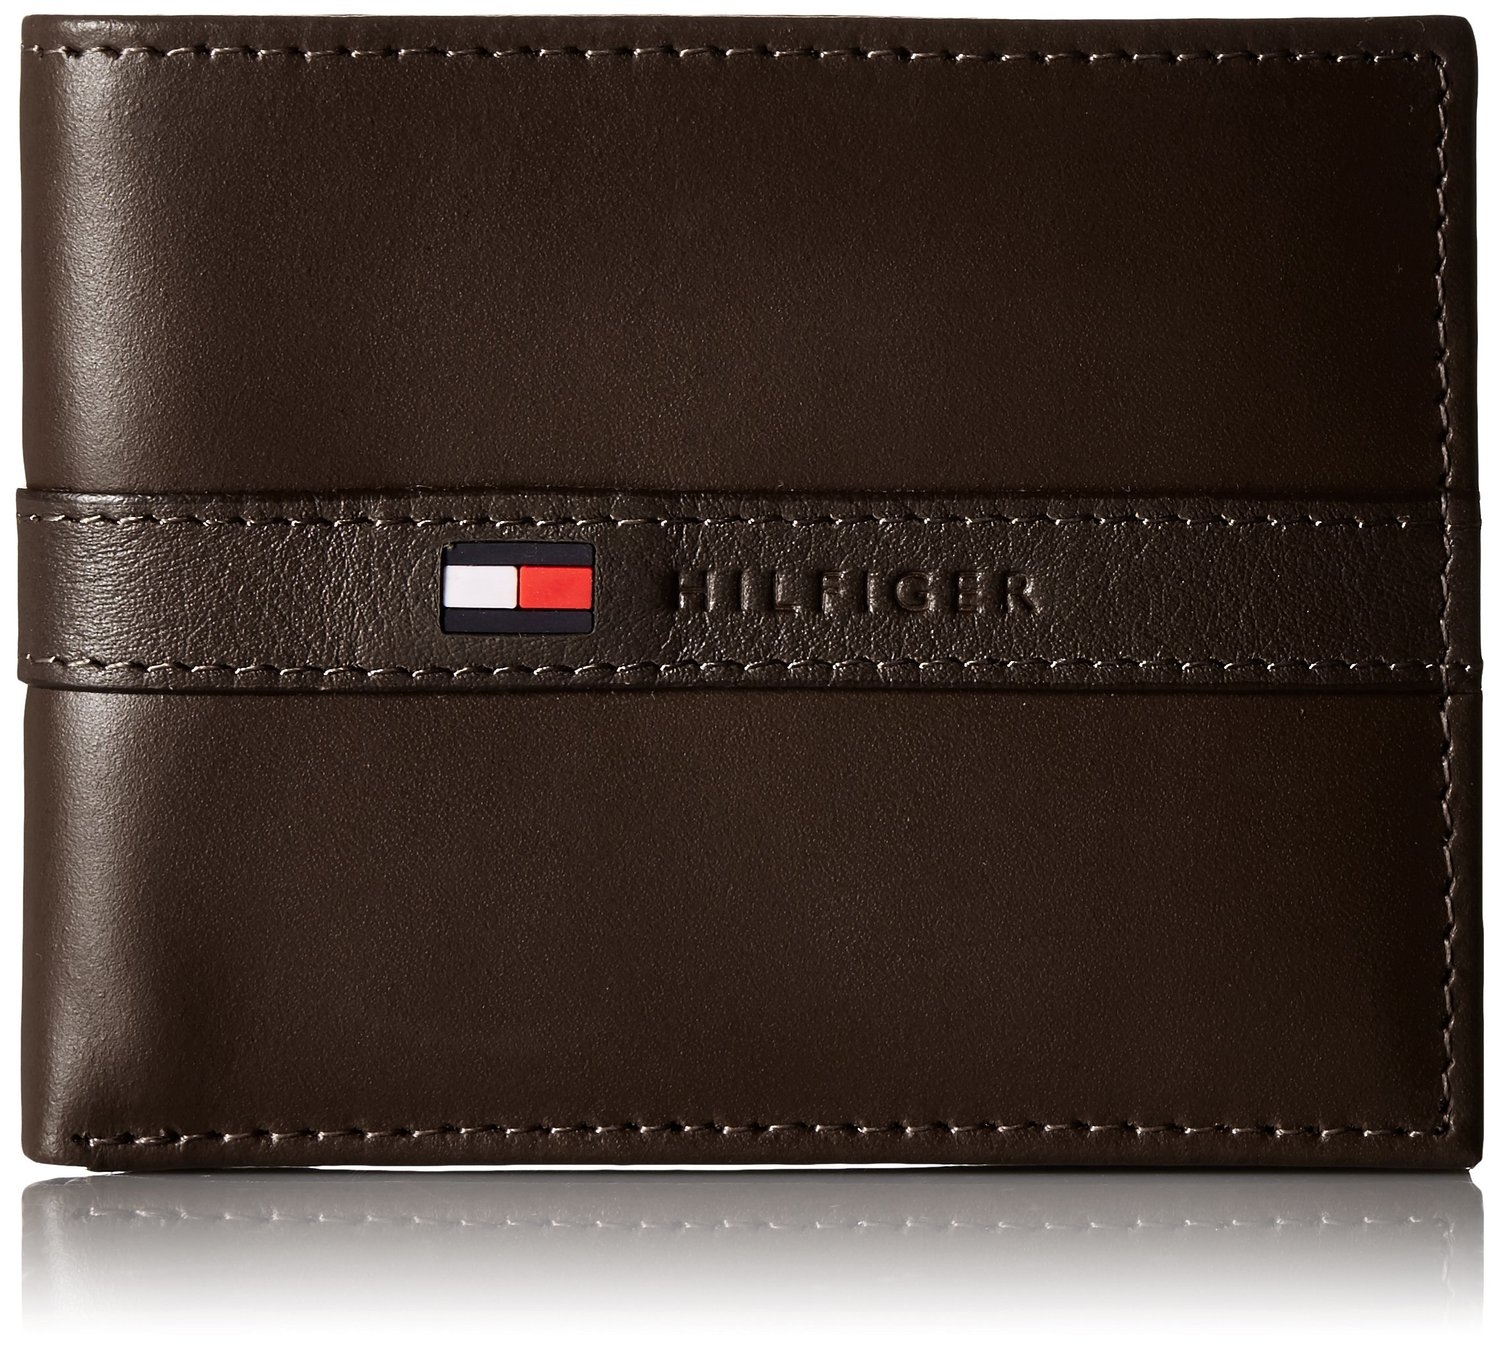 Tommy Hilfiger Men's Ranger Leather Passcase Wallet with Removable Card Case, Brown, One Size at Amazon Men's Clothing store